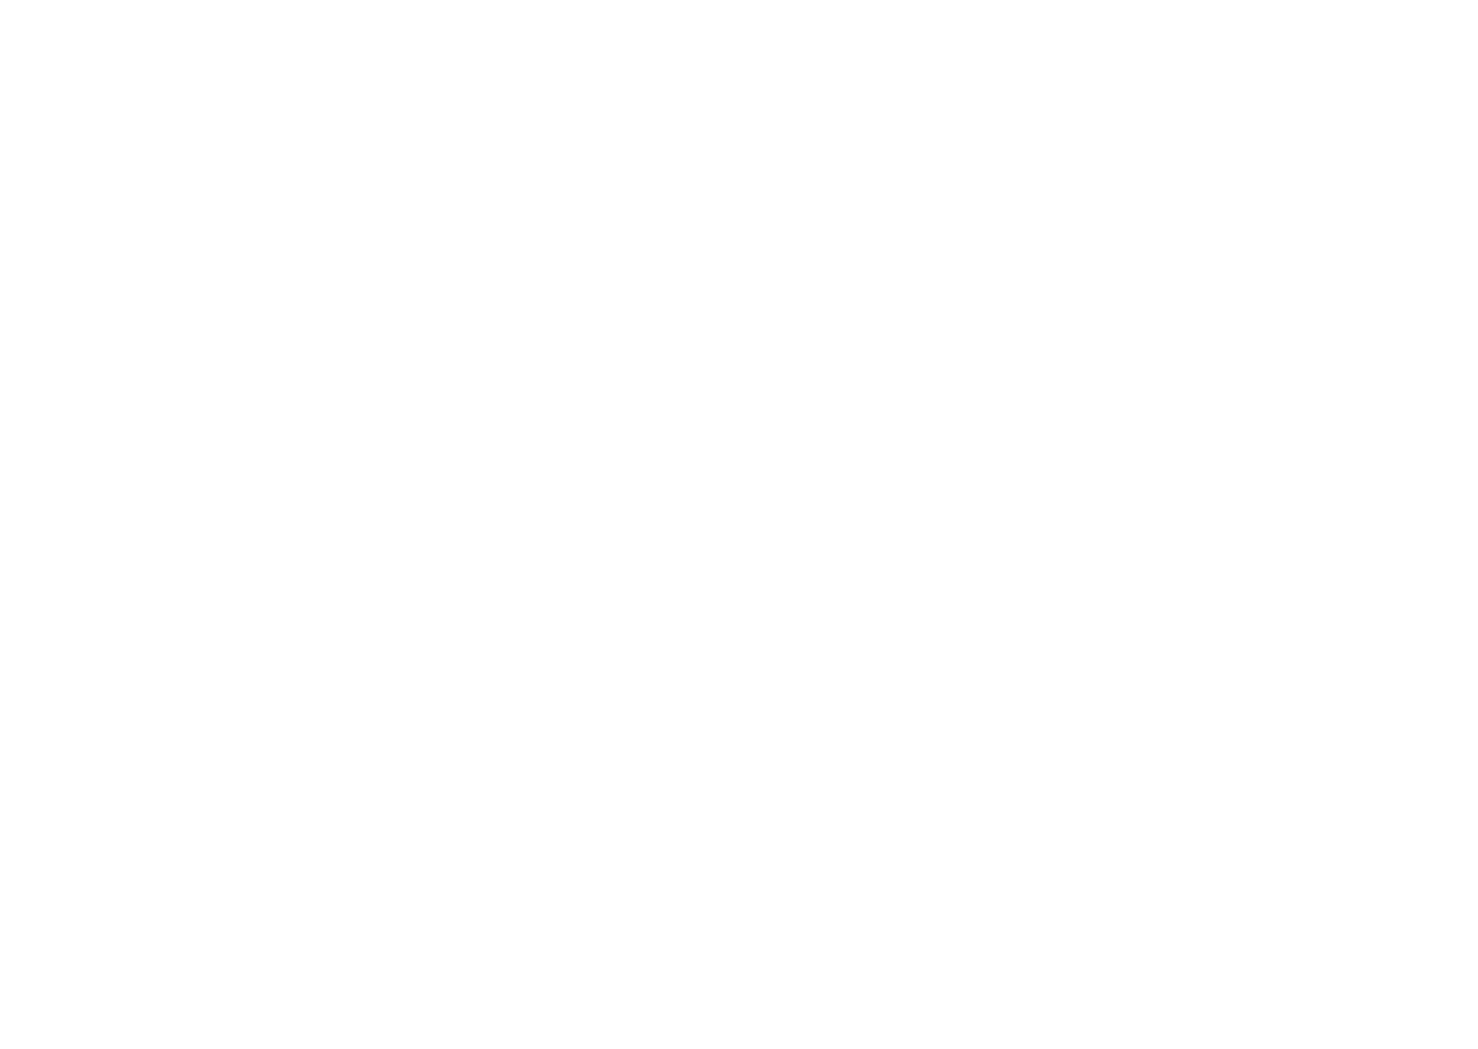 Mindful Meats